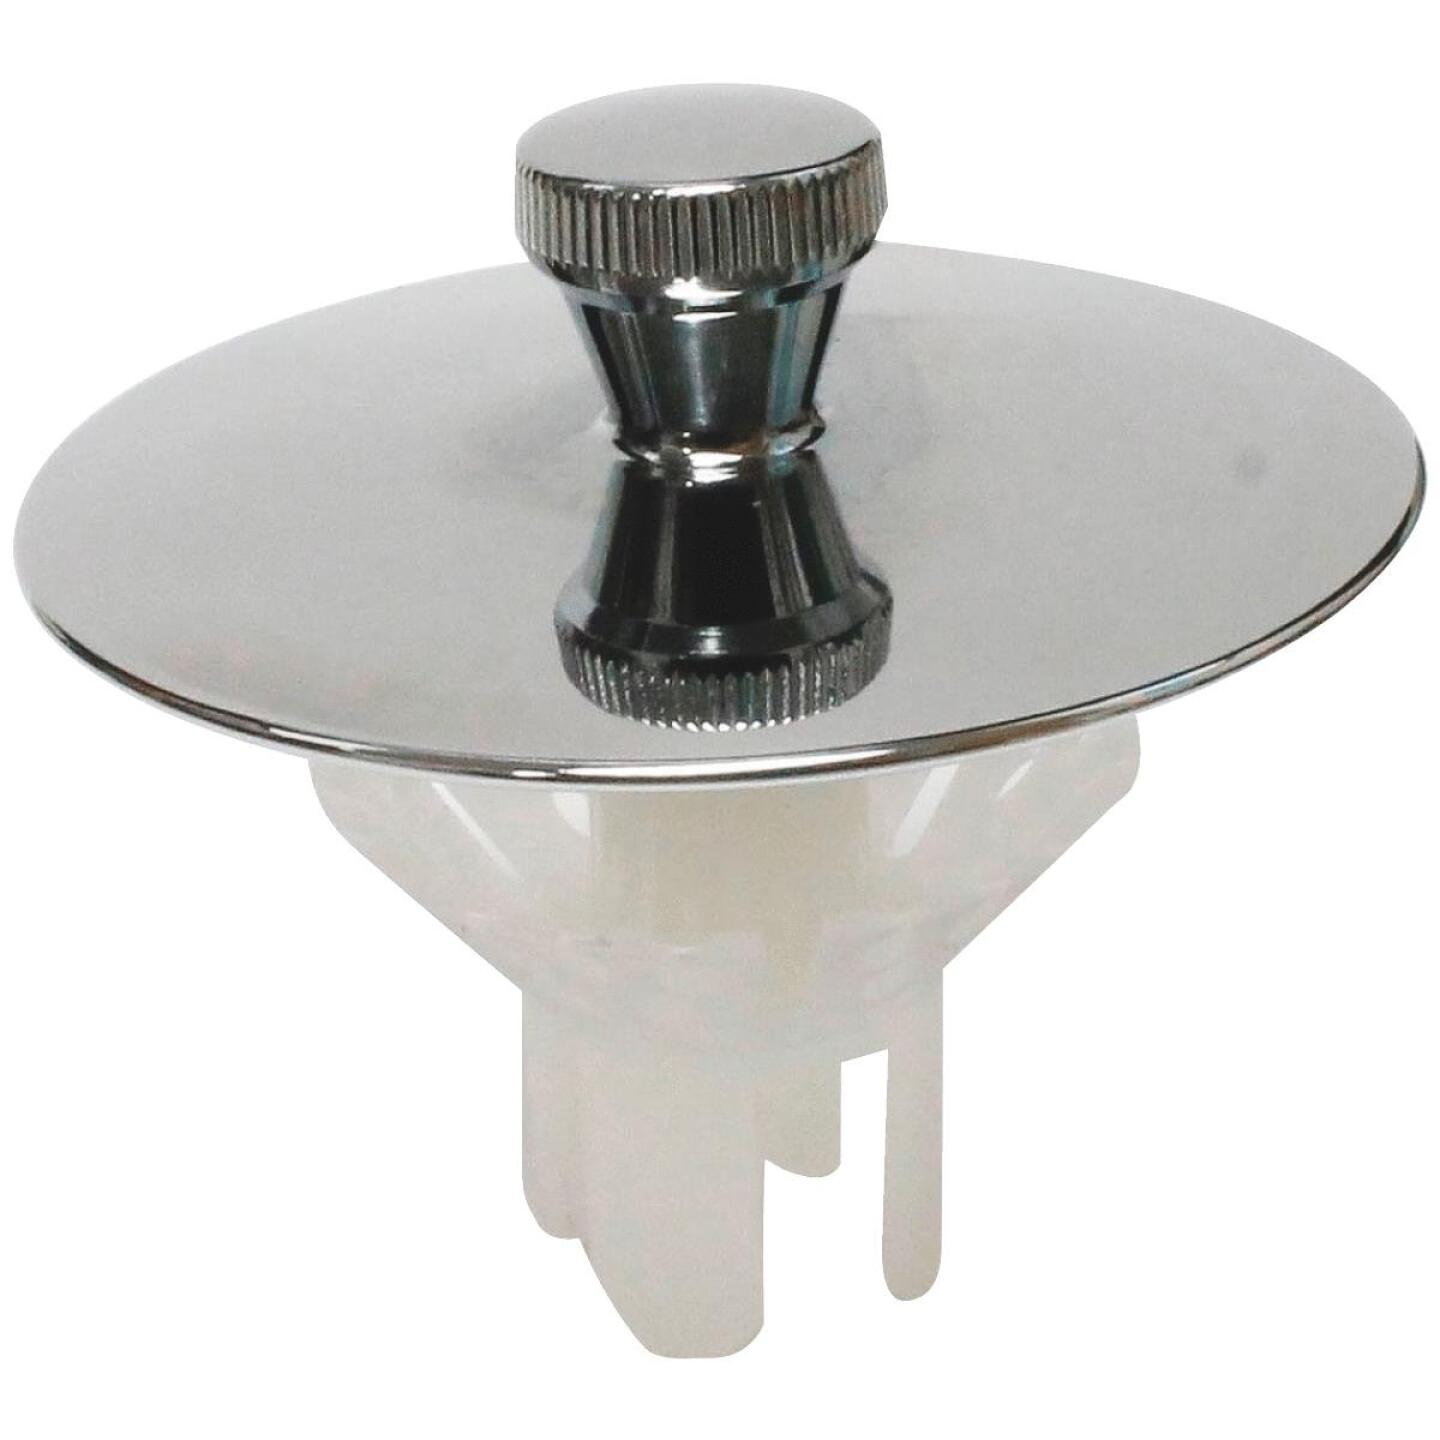 Keeney Quick-N-Easy Bathtub Drain Stopper with Polished Chrome Finish Image 1